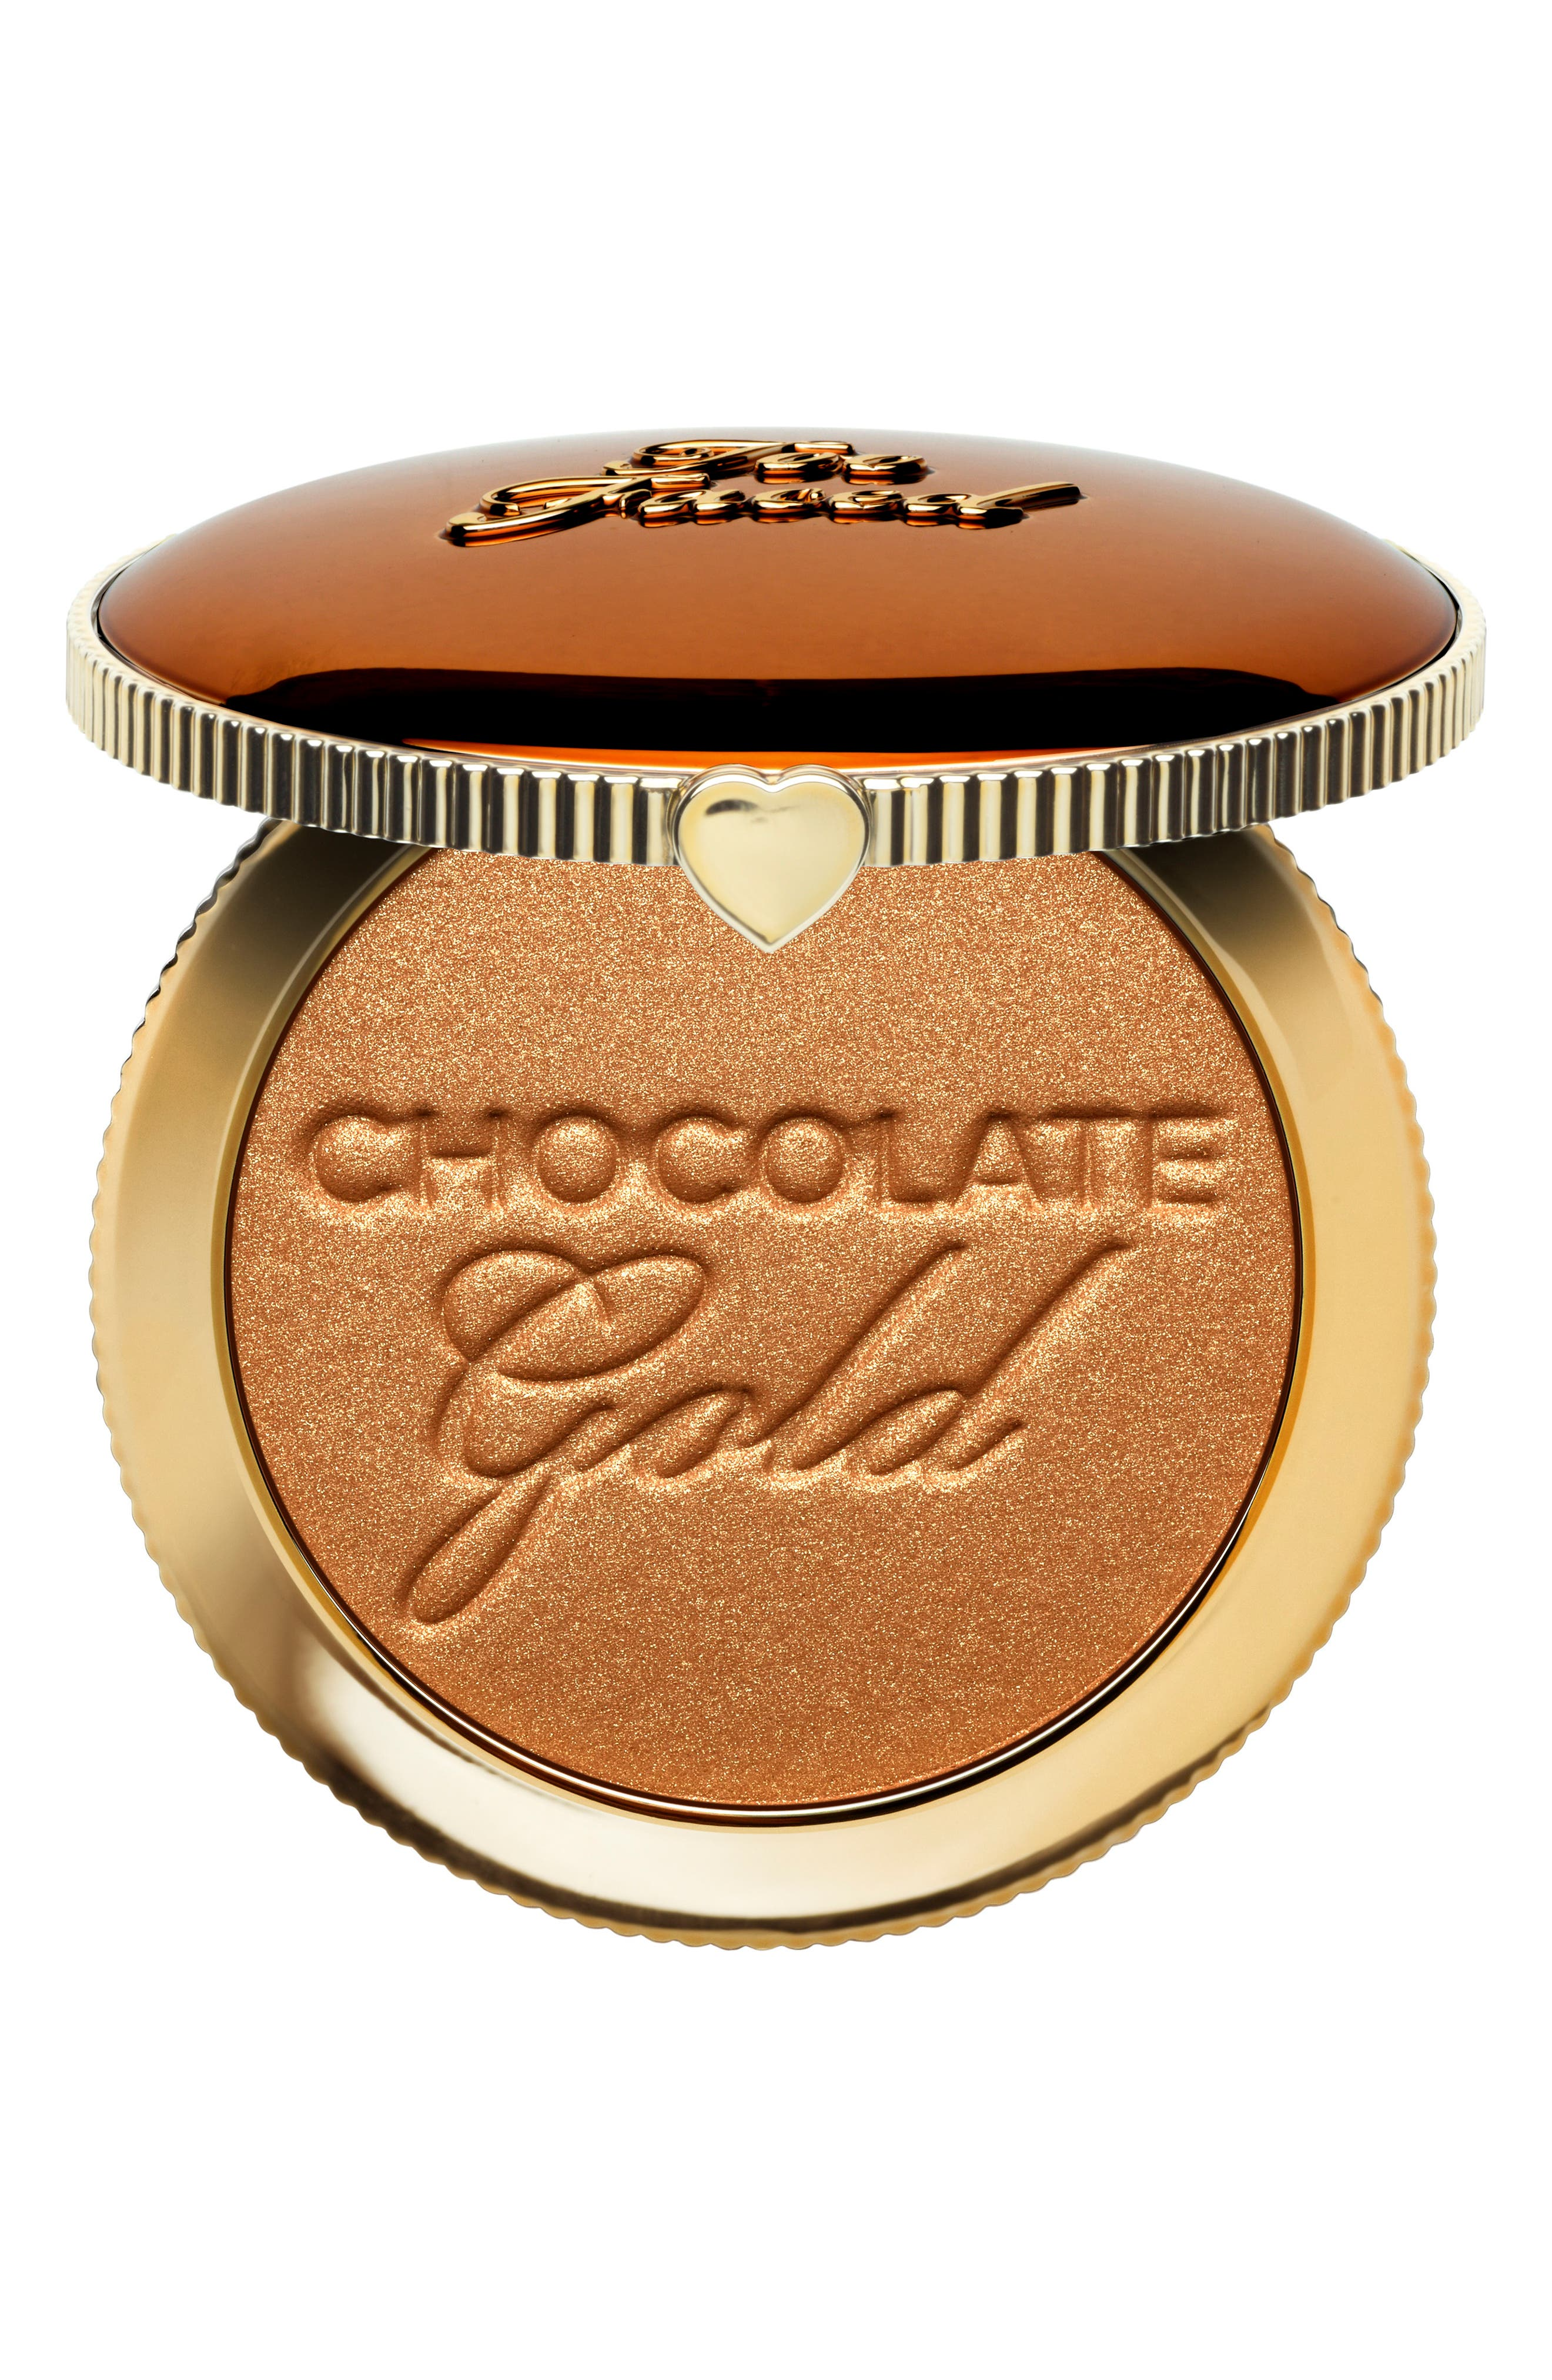 Chocolate Gold Soleil Bronzer,                             Main thumbnail 1, color,                             CHOCOLATE GOLD SOLEIL